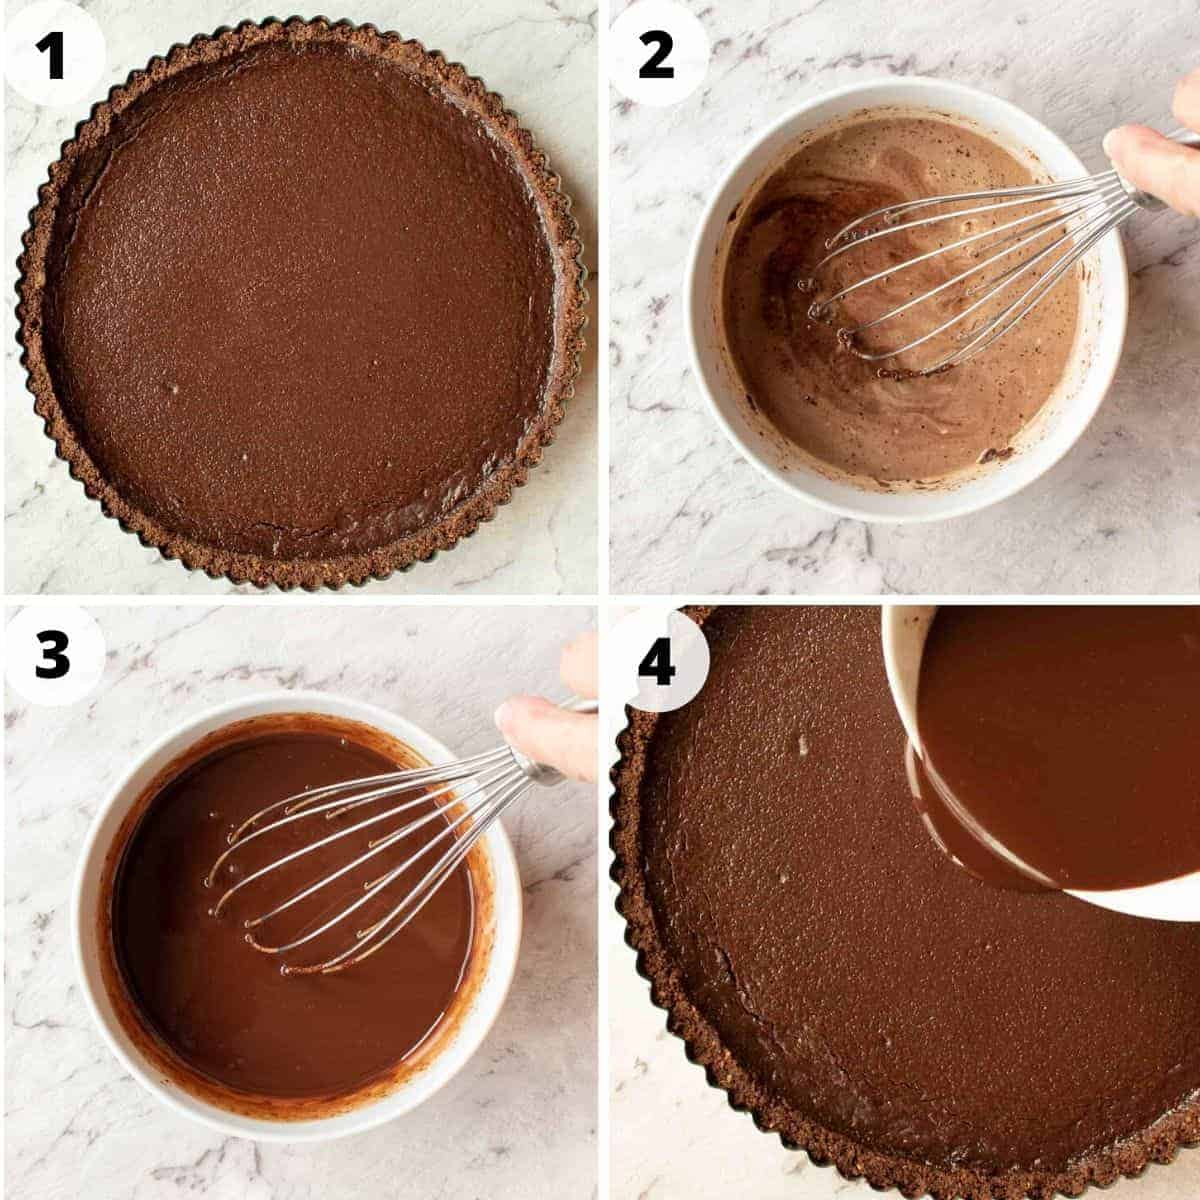 four images showing preparation of chocolate ganache topping.